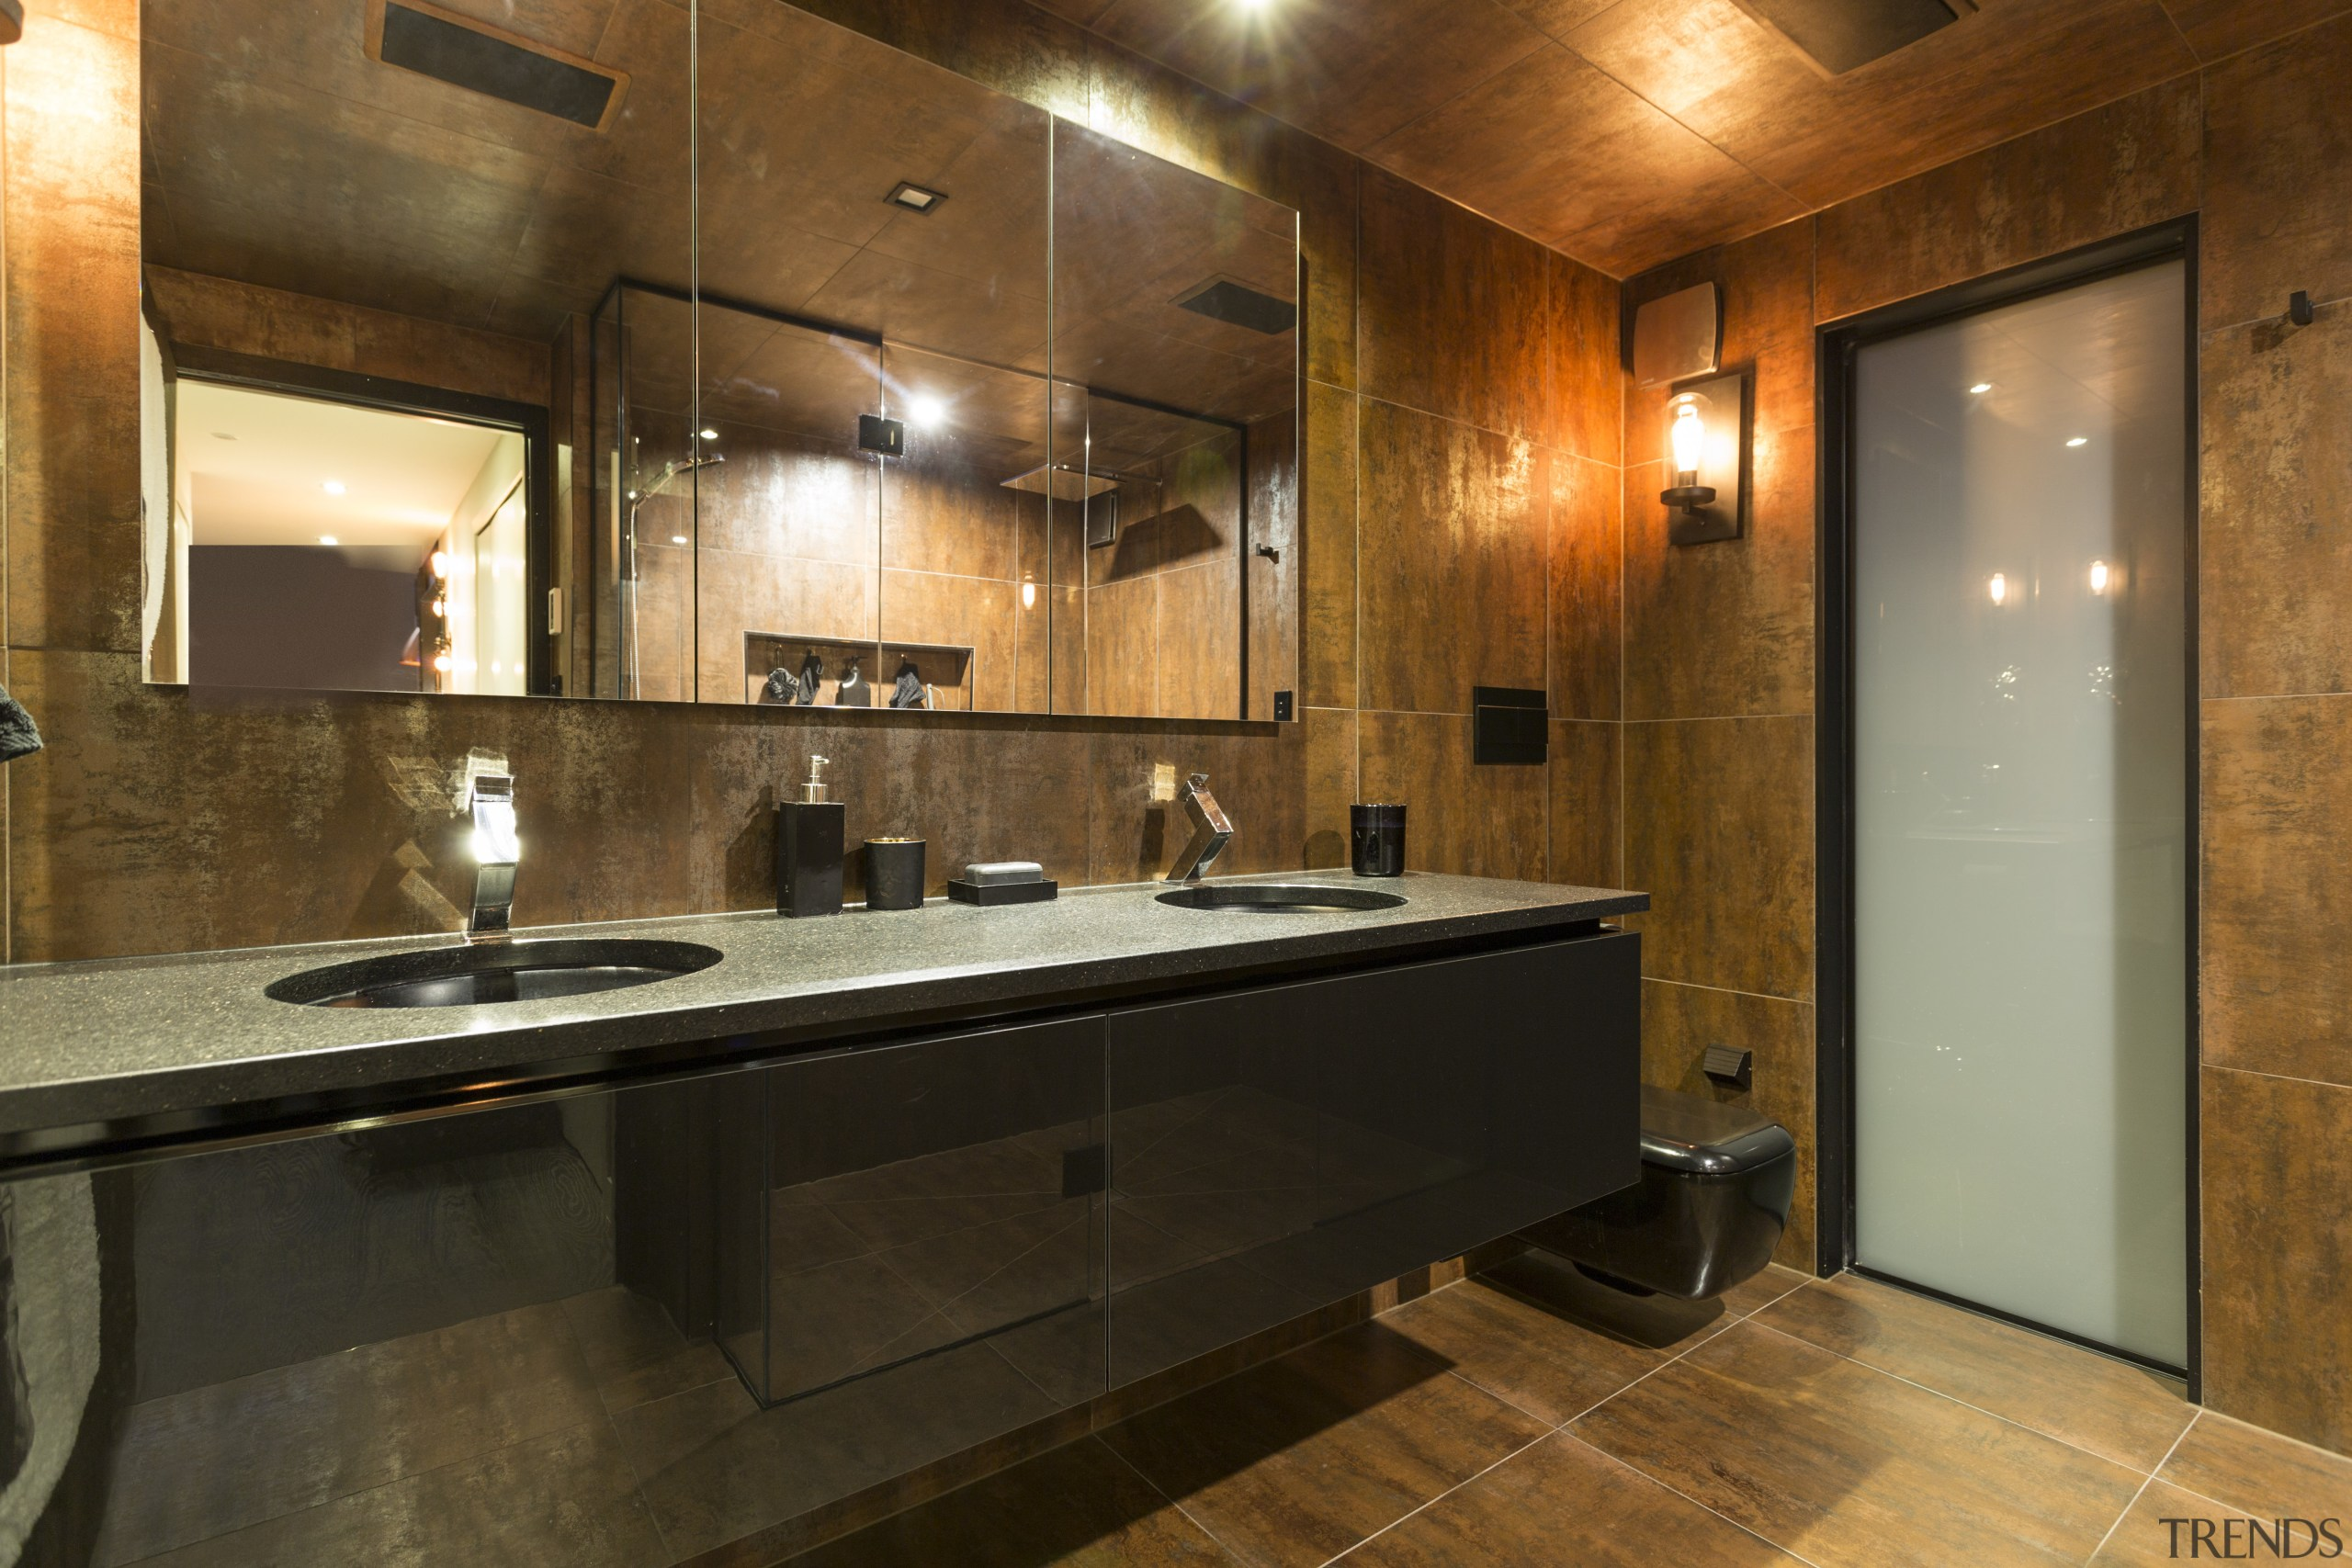 Choice of materials in this bathroom by designer cabinetry, ceiling, countertop, flooring, interior design, kitchen, real estate, room, brown